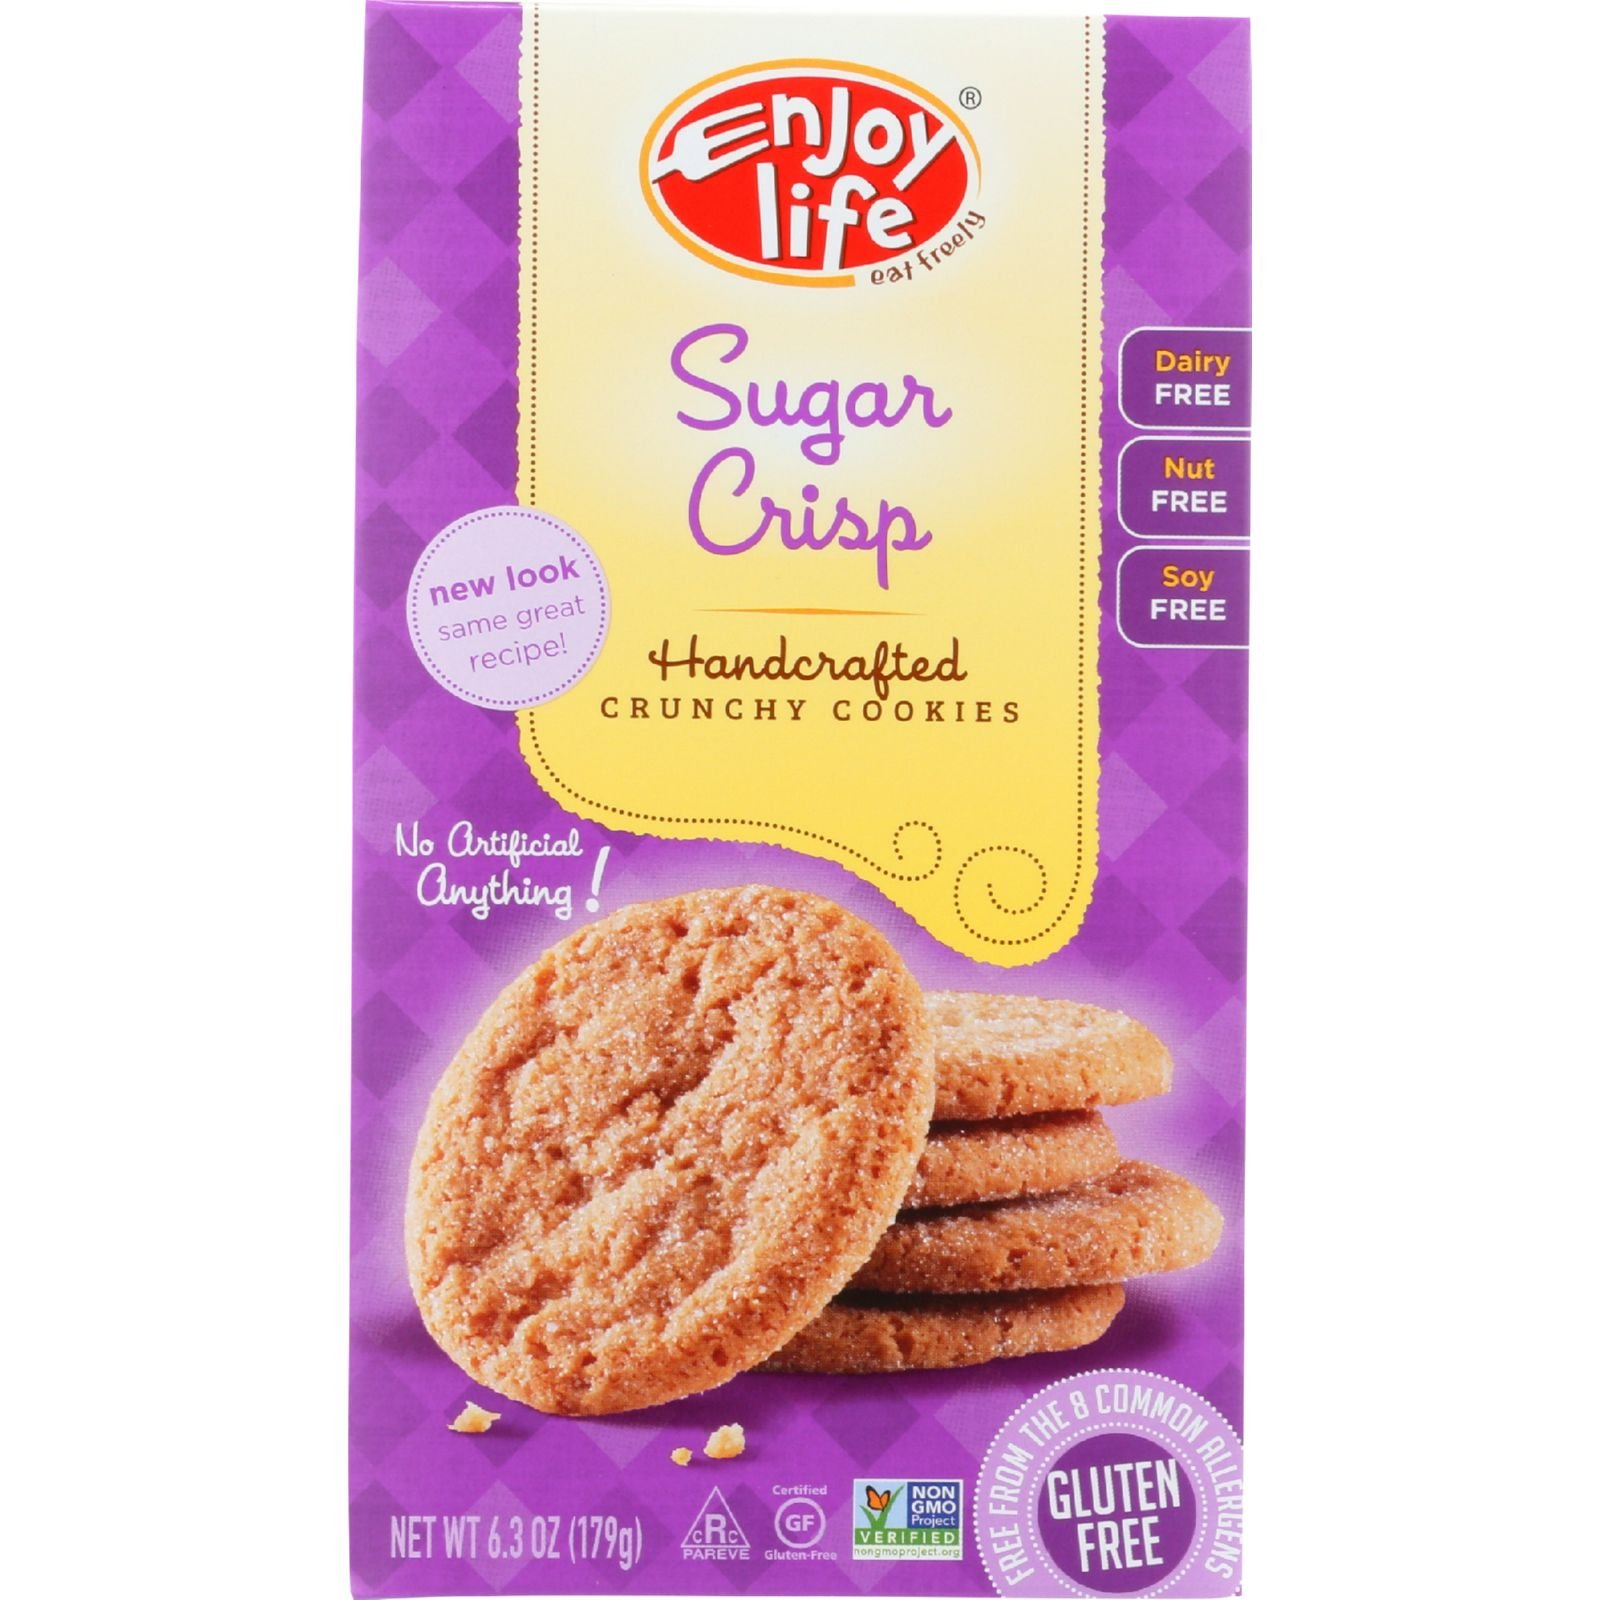 Enjoy Life Cookie - Crunchy - Sugar Crisp - Crunchy - Gluten Free - 6.3 oz - case of 6 - Gluten Free - Wheat Free-Vegan